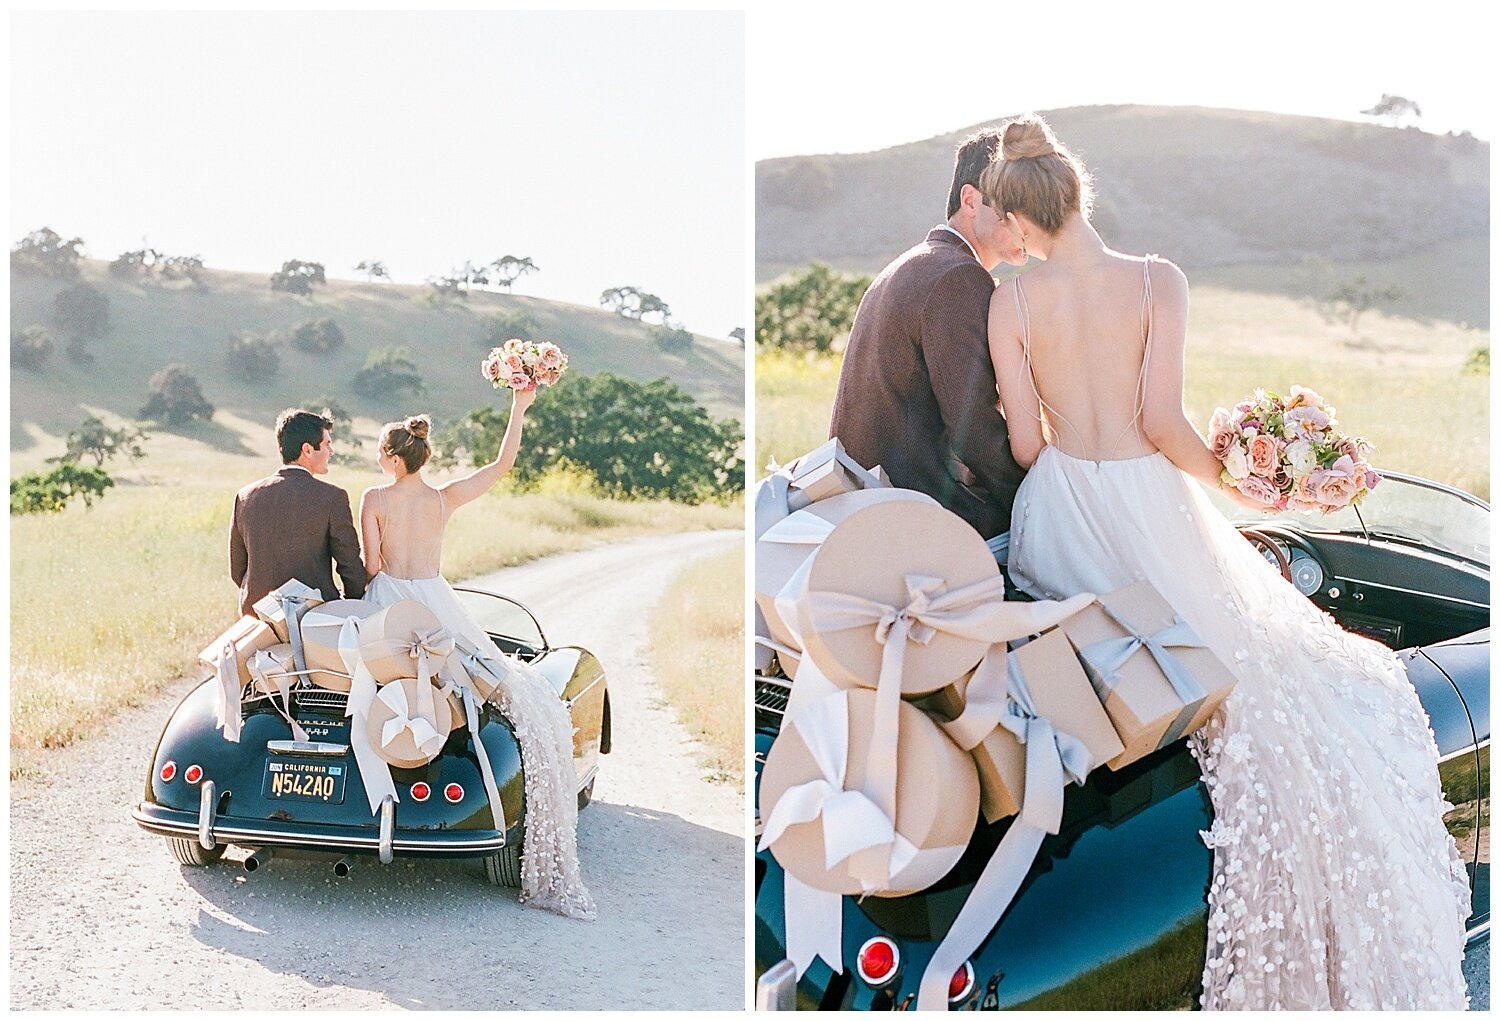 Janine_Licare_Photography_San_Francisco_Kestrel_Park_Santa_Ynez_Sunstone_Villa_Winer_Wedding_Photographer_Meadowood_Napa_Valley_Sonoma_0075.jpg